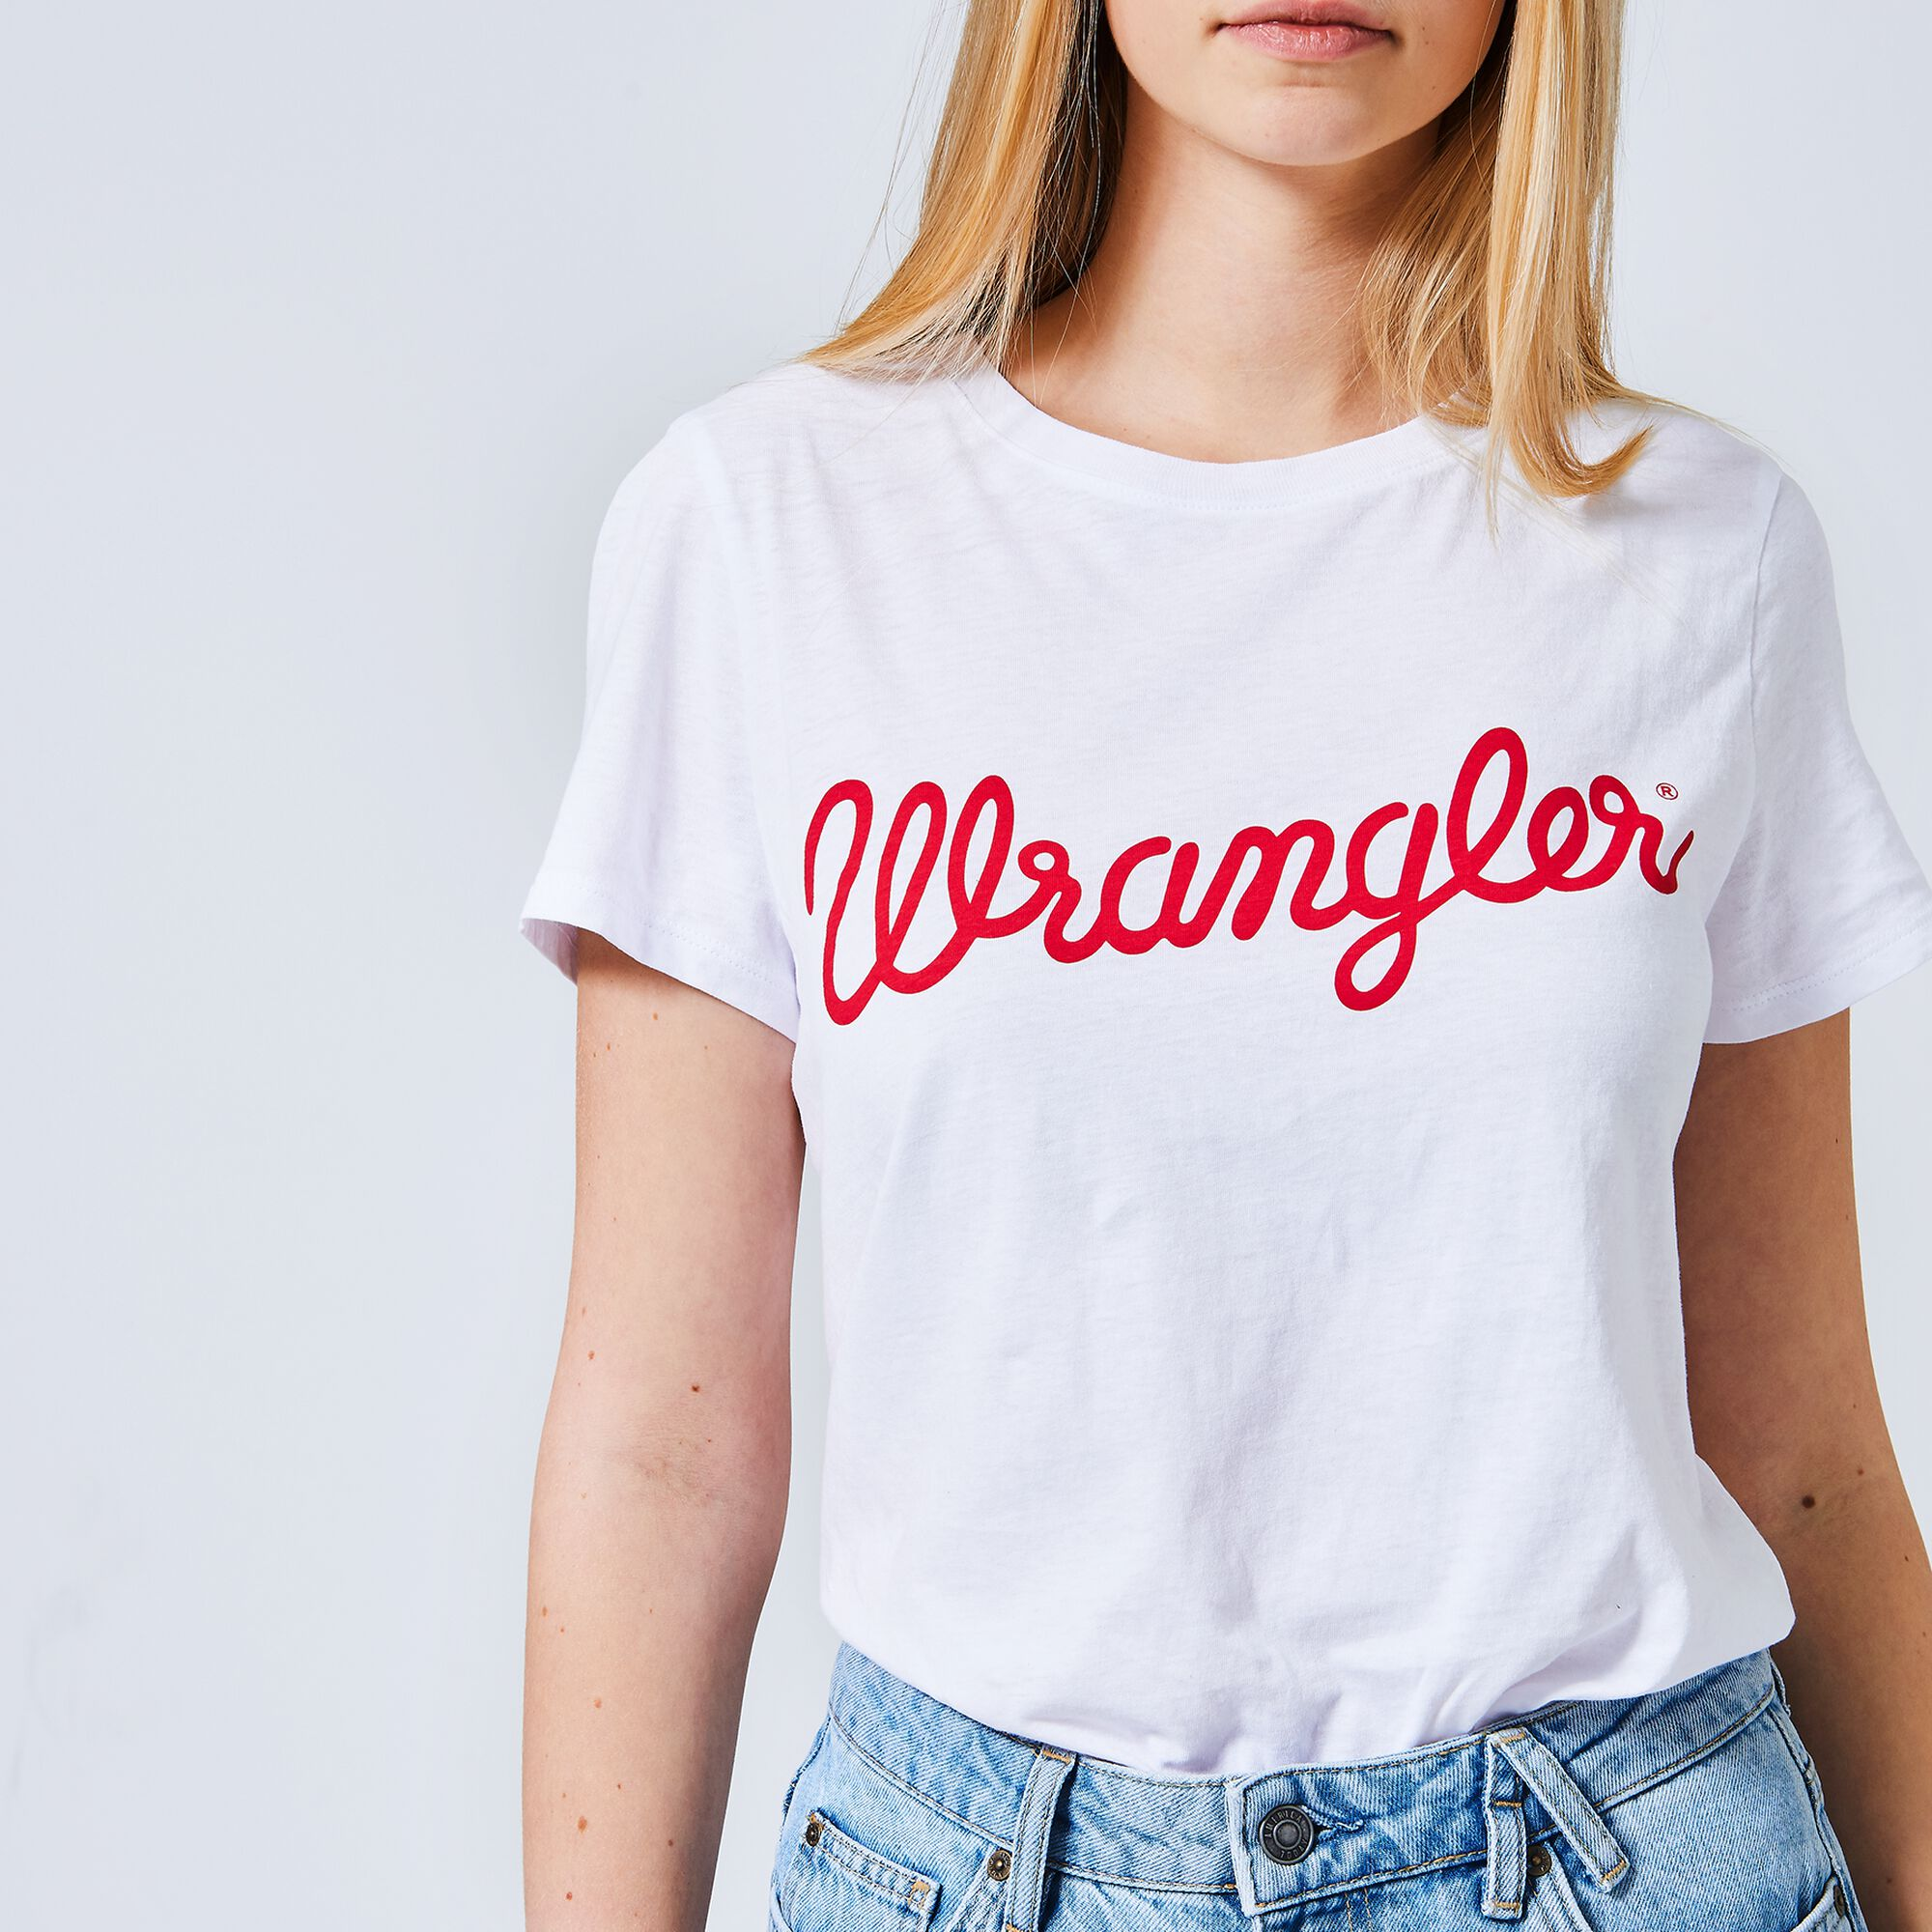 Women T Shirt Wrangler Regular Fit Red Buy Online We strive to offer a vast assortment of denim styles that not only look good and feel good, but cater to. women t shirt wrangler regular fit red